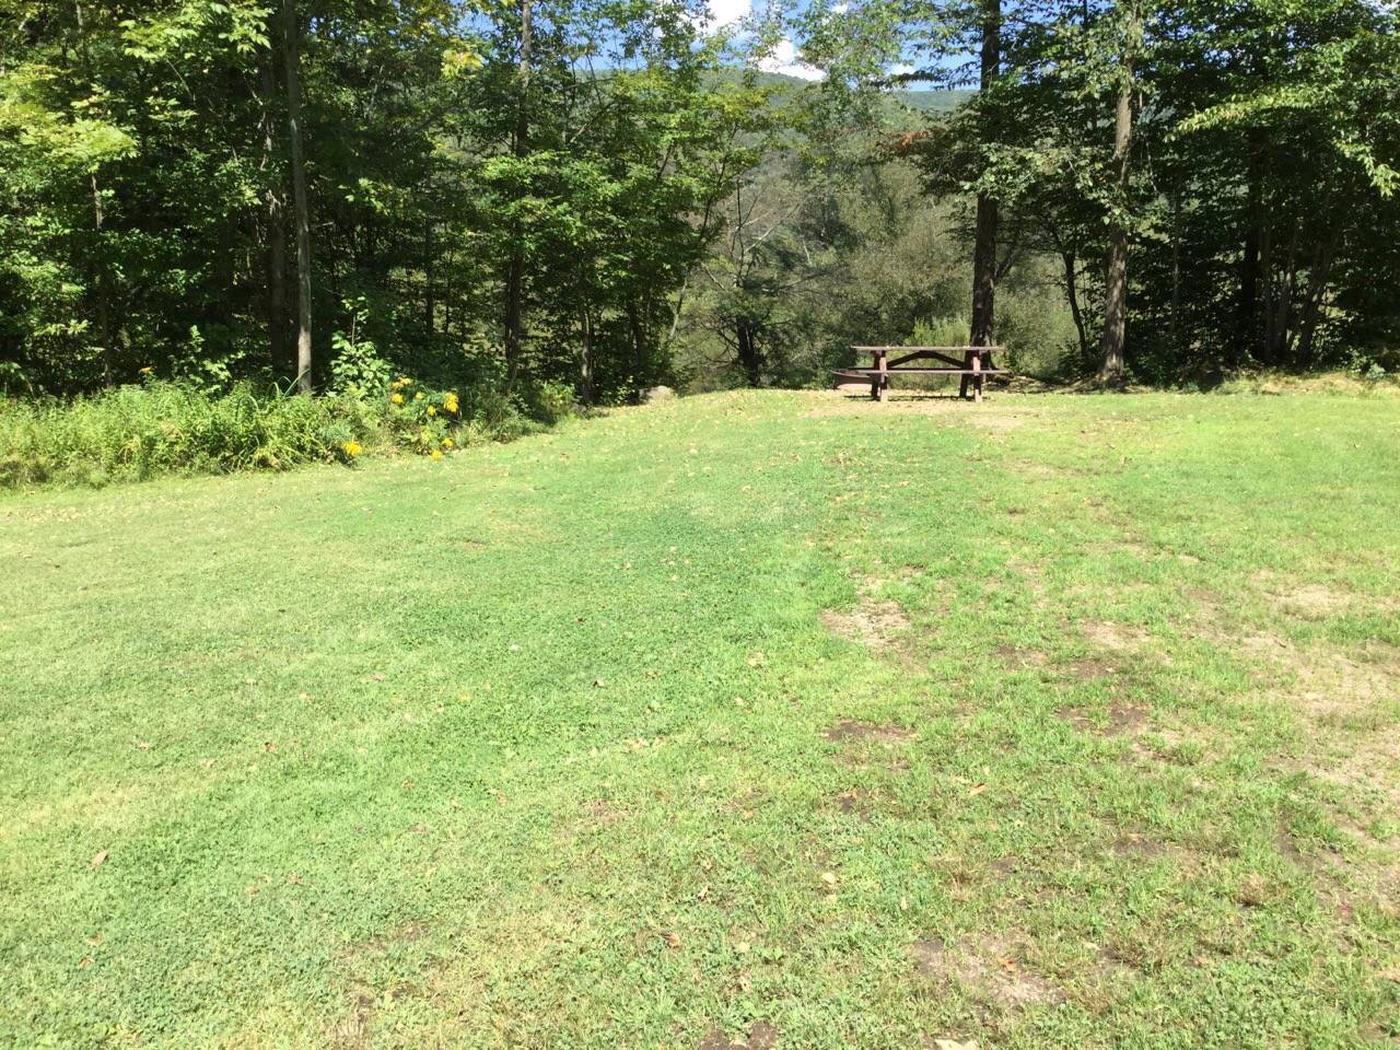 Willow Bay Recreation Area: Site 57